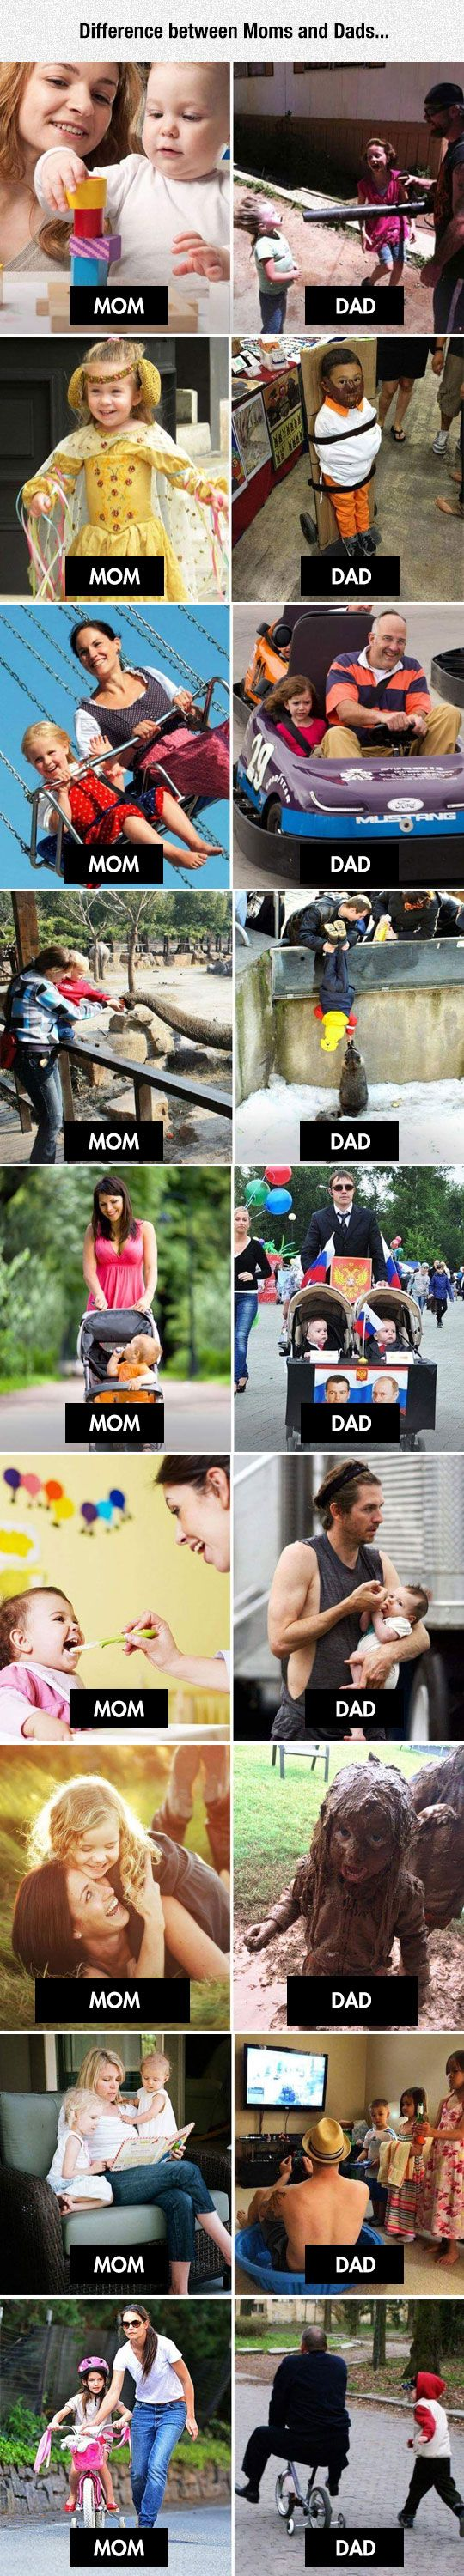 Difference Between Moms and Dads Taking Care of Kids